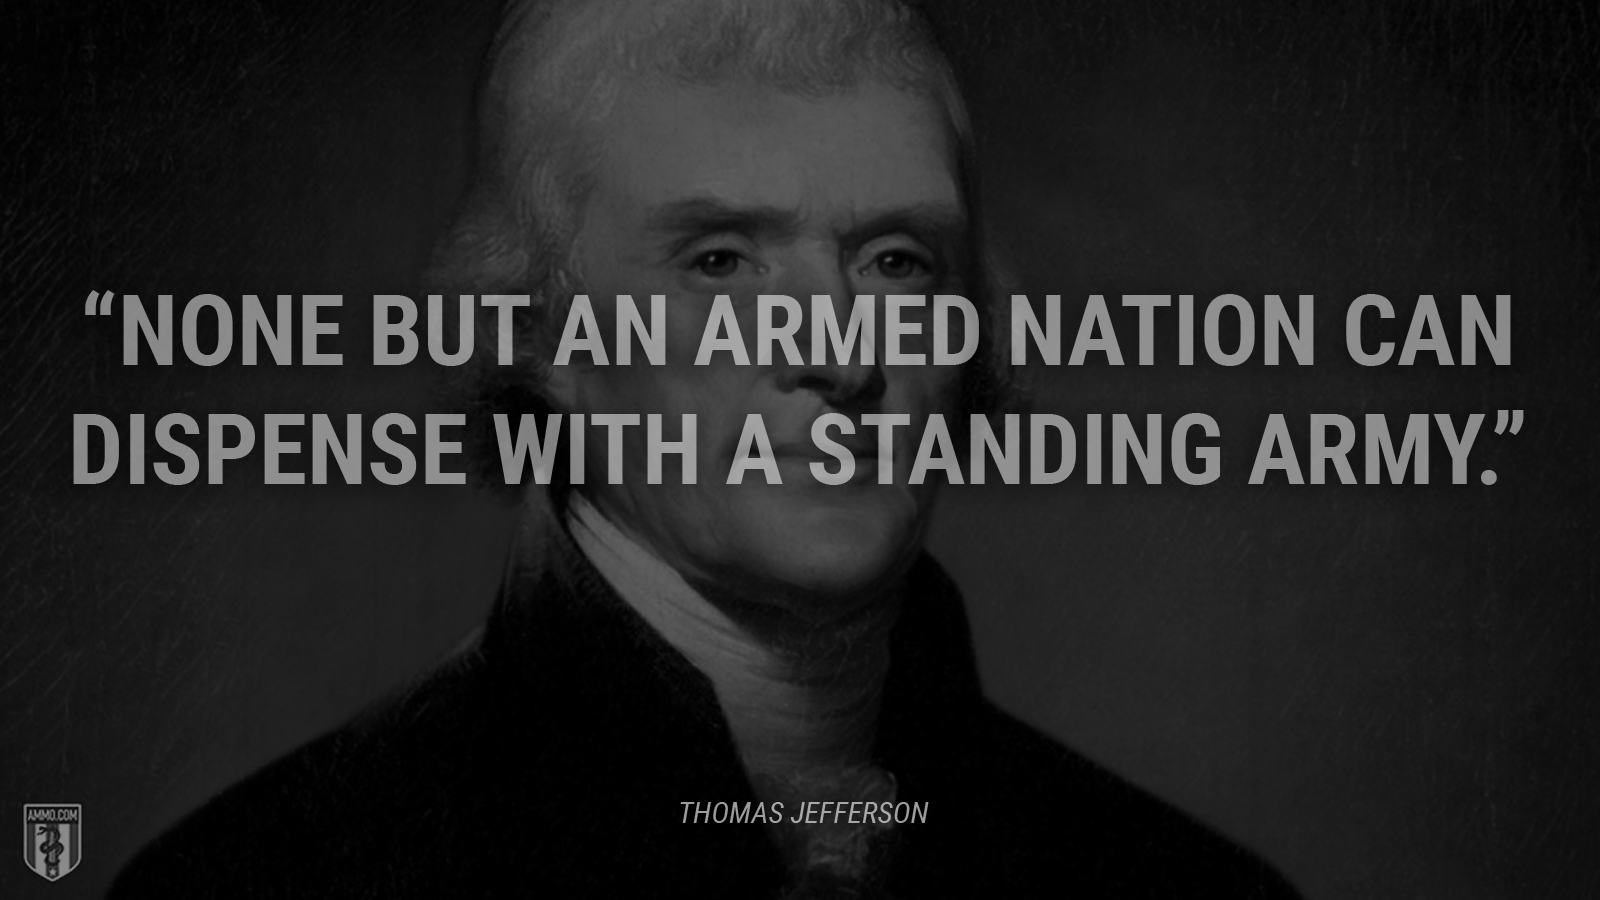 """None but an armed nation can dispense with a standing army."" - Thomas Jefferson"